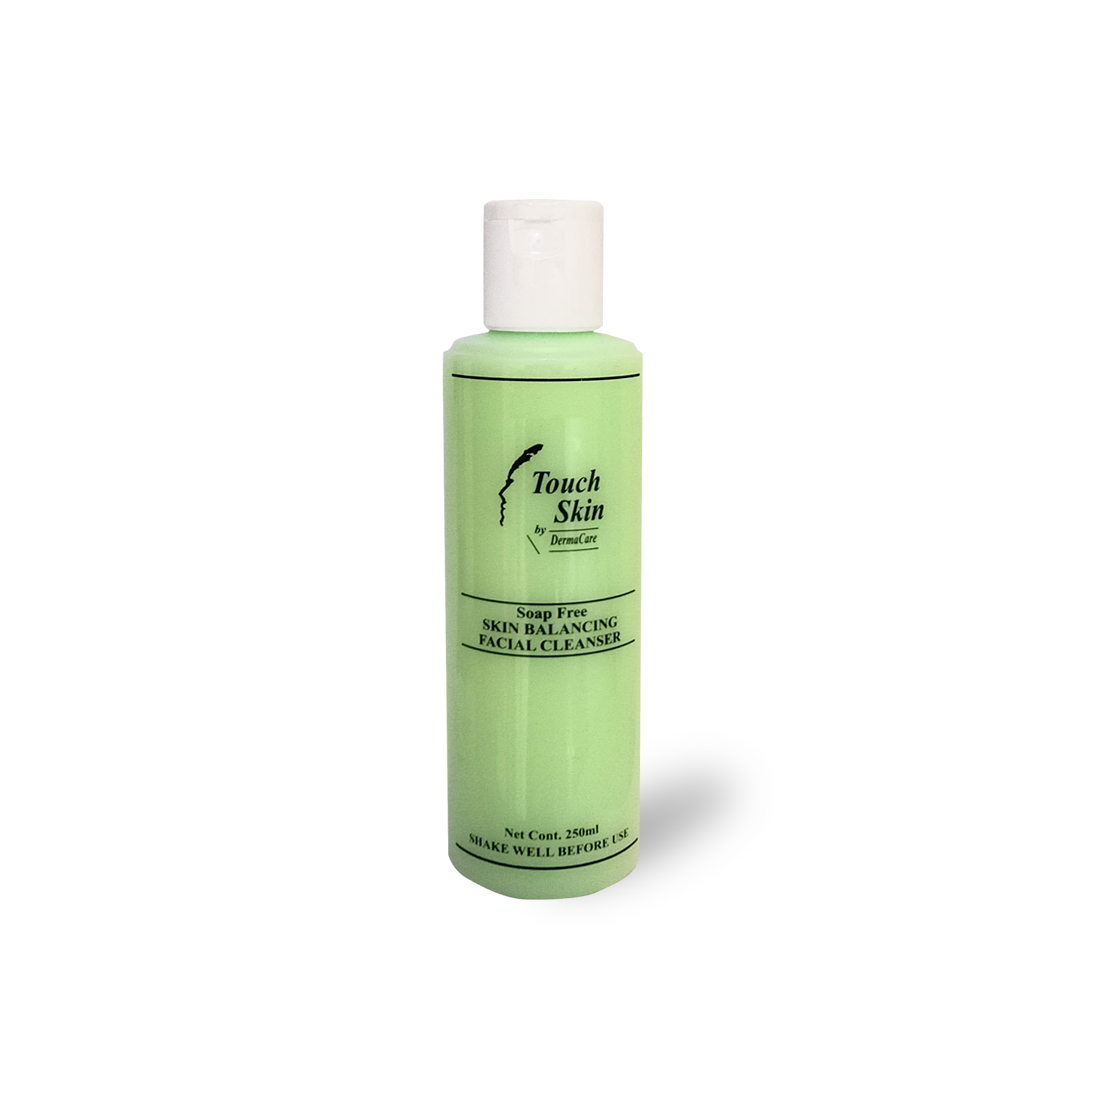 Skin Balancing Facial Cleanser for Normal to Dry Skin - Dermacare Therapeutic Skincare